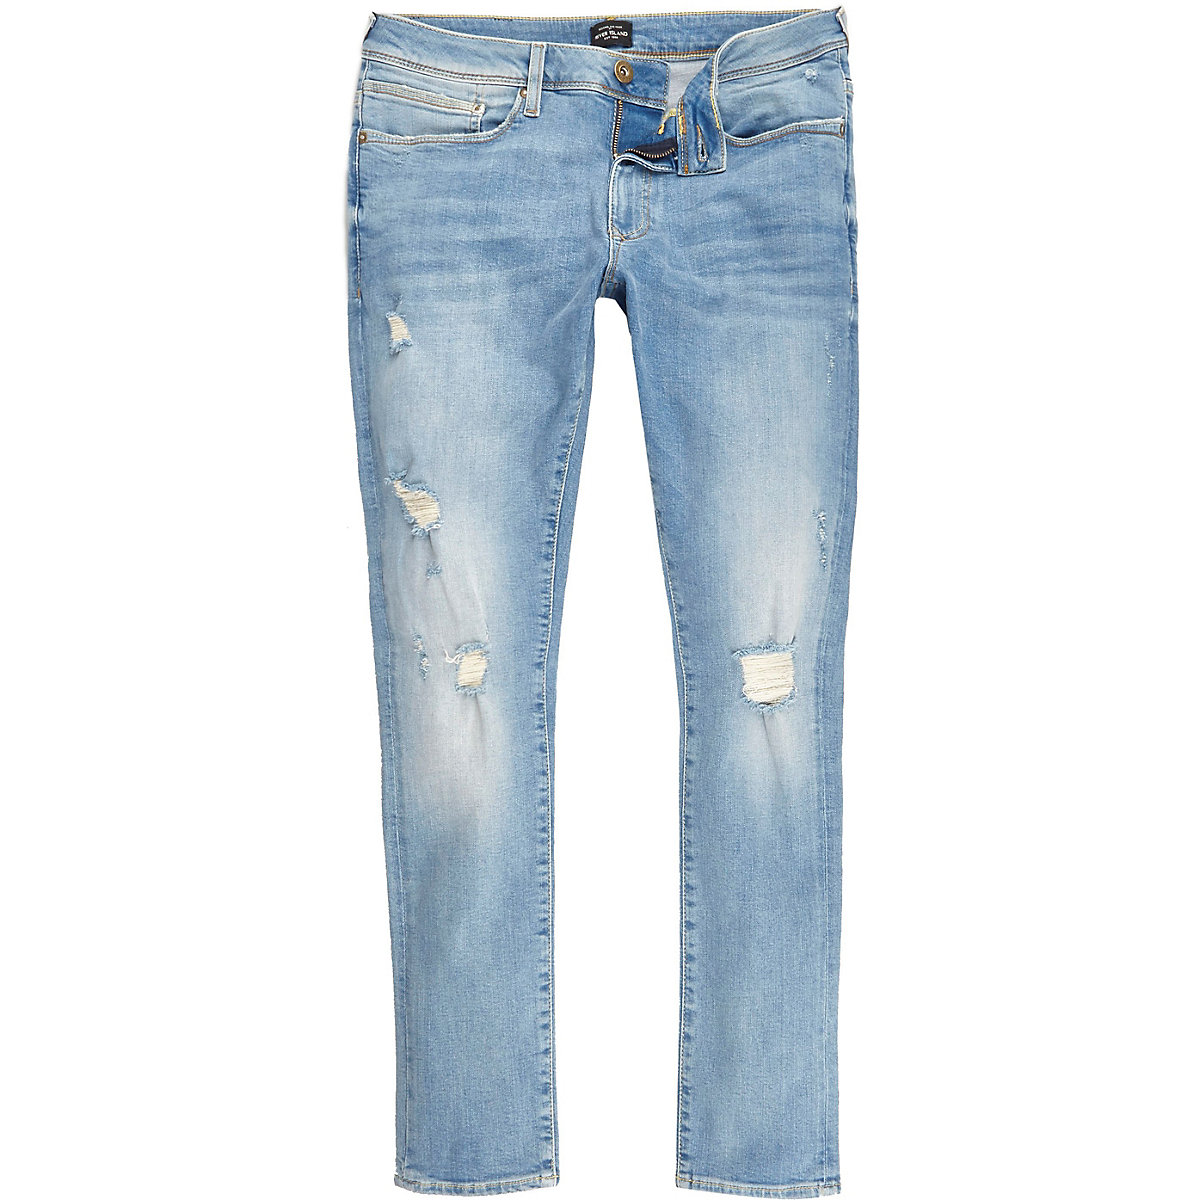 Light blue ripped Danny super skinny jeans